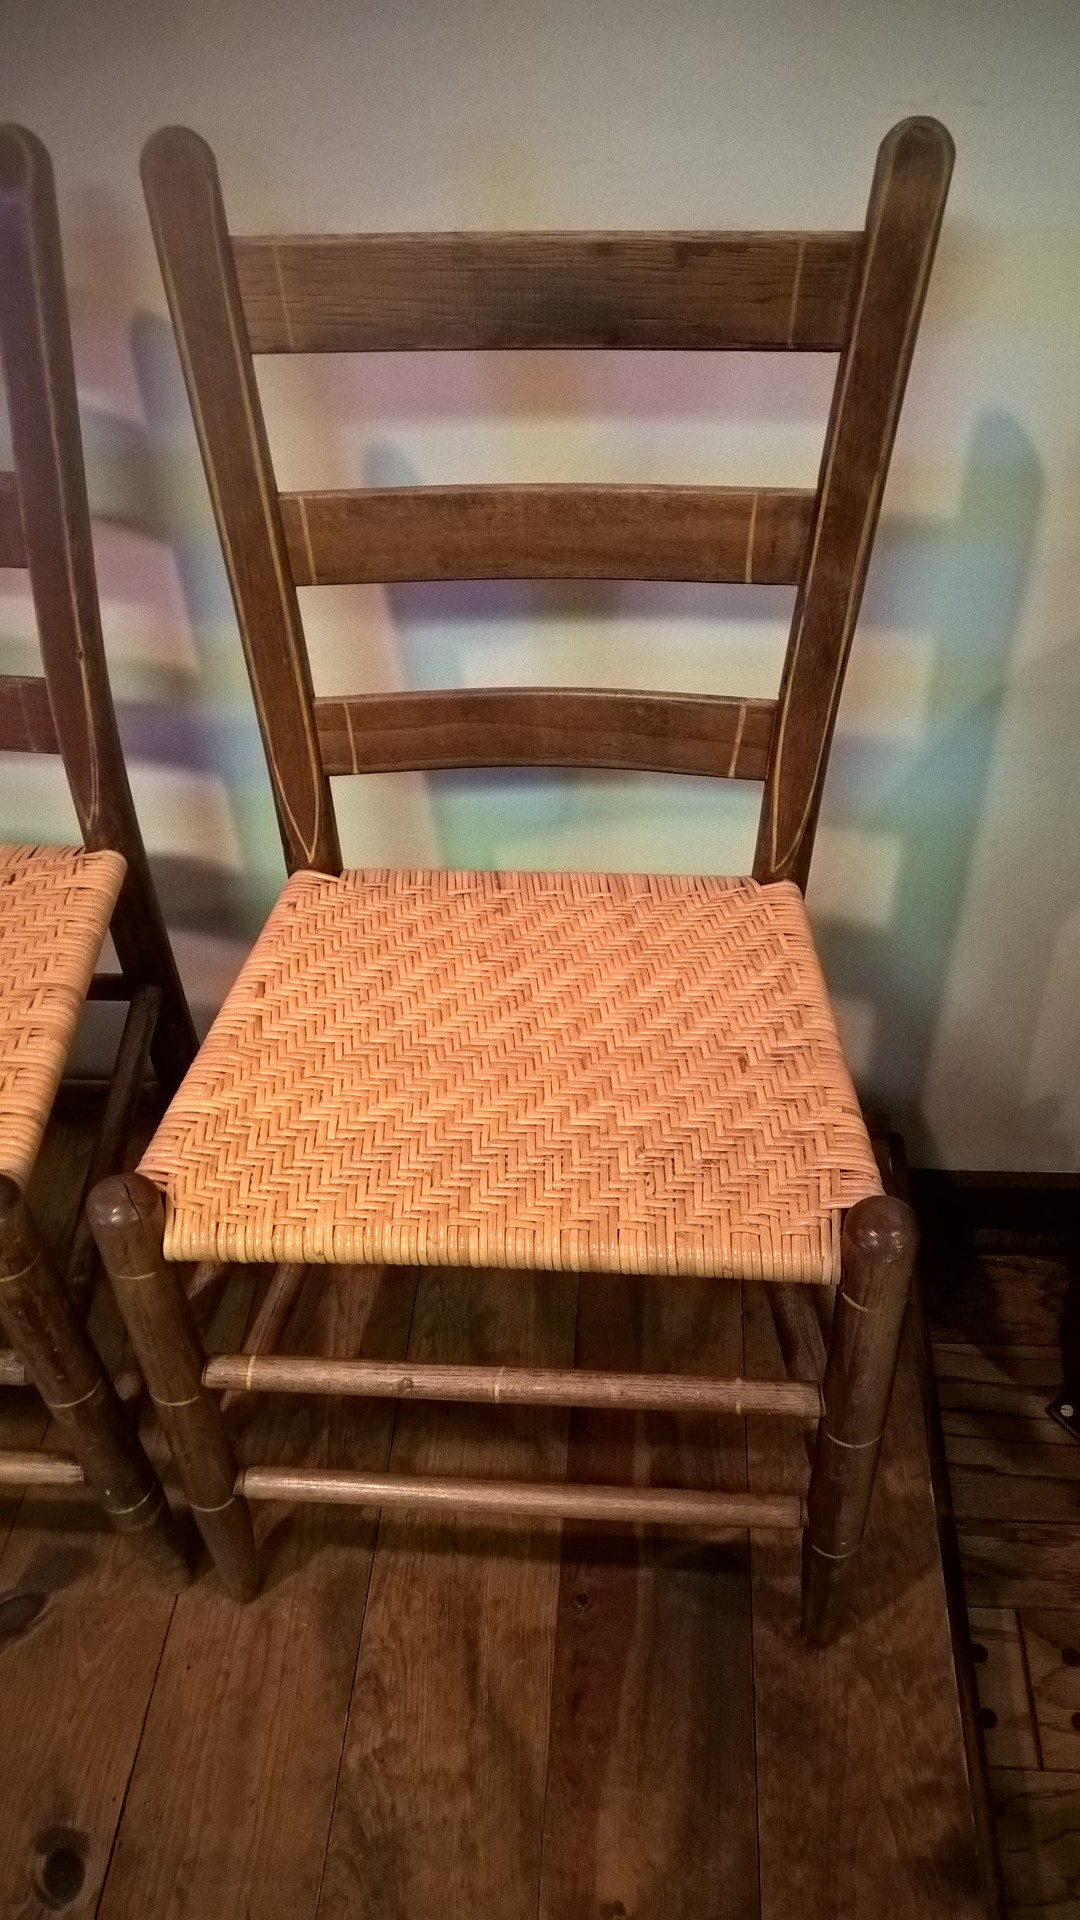 how to cane a chair covers office seats ladderback - wikipedia